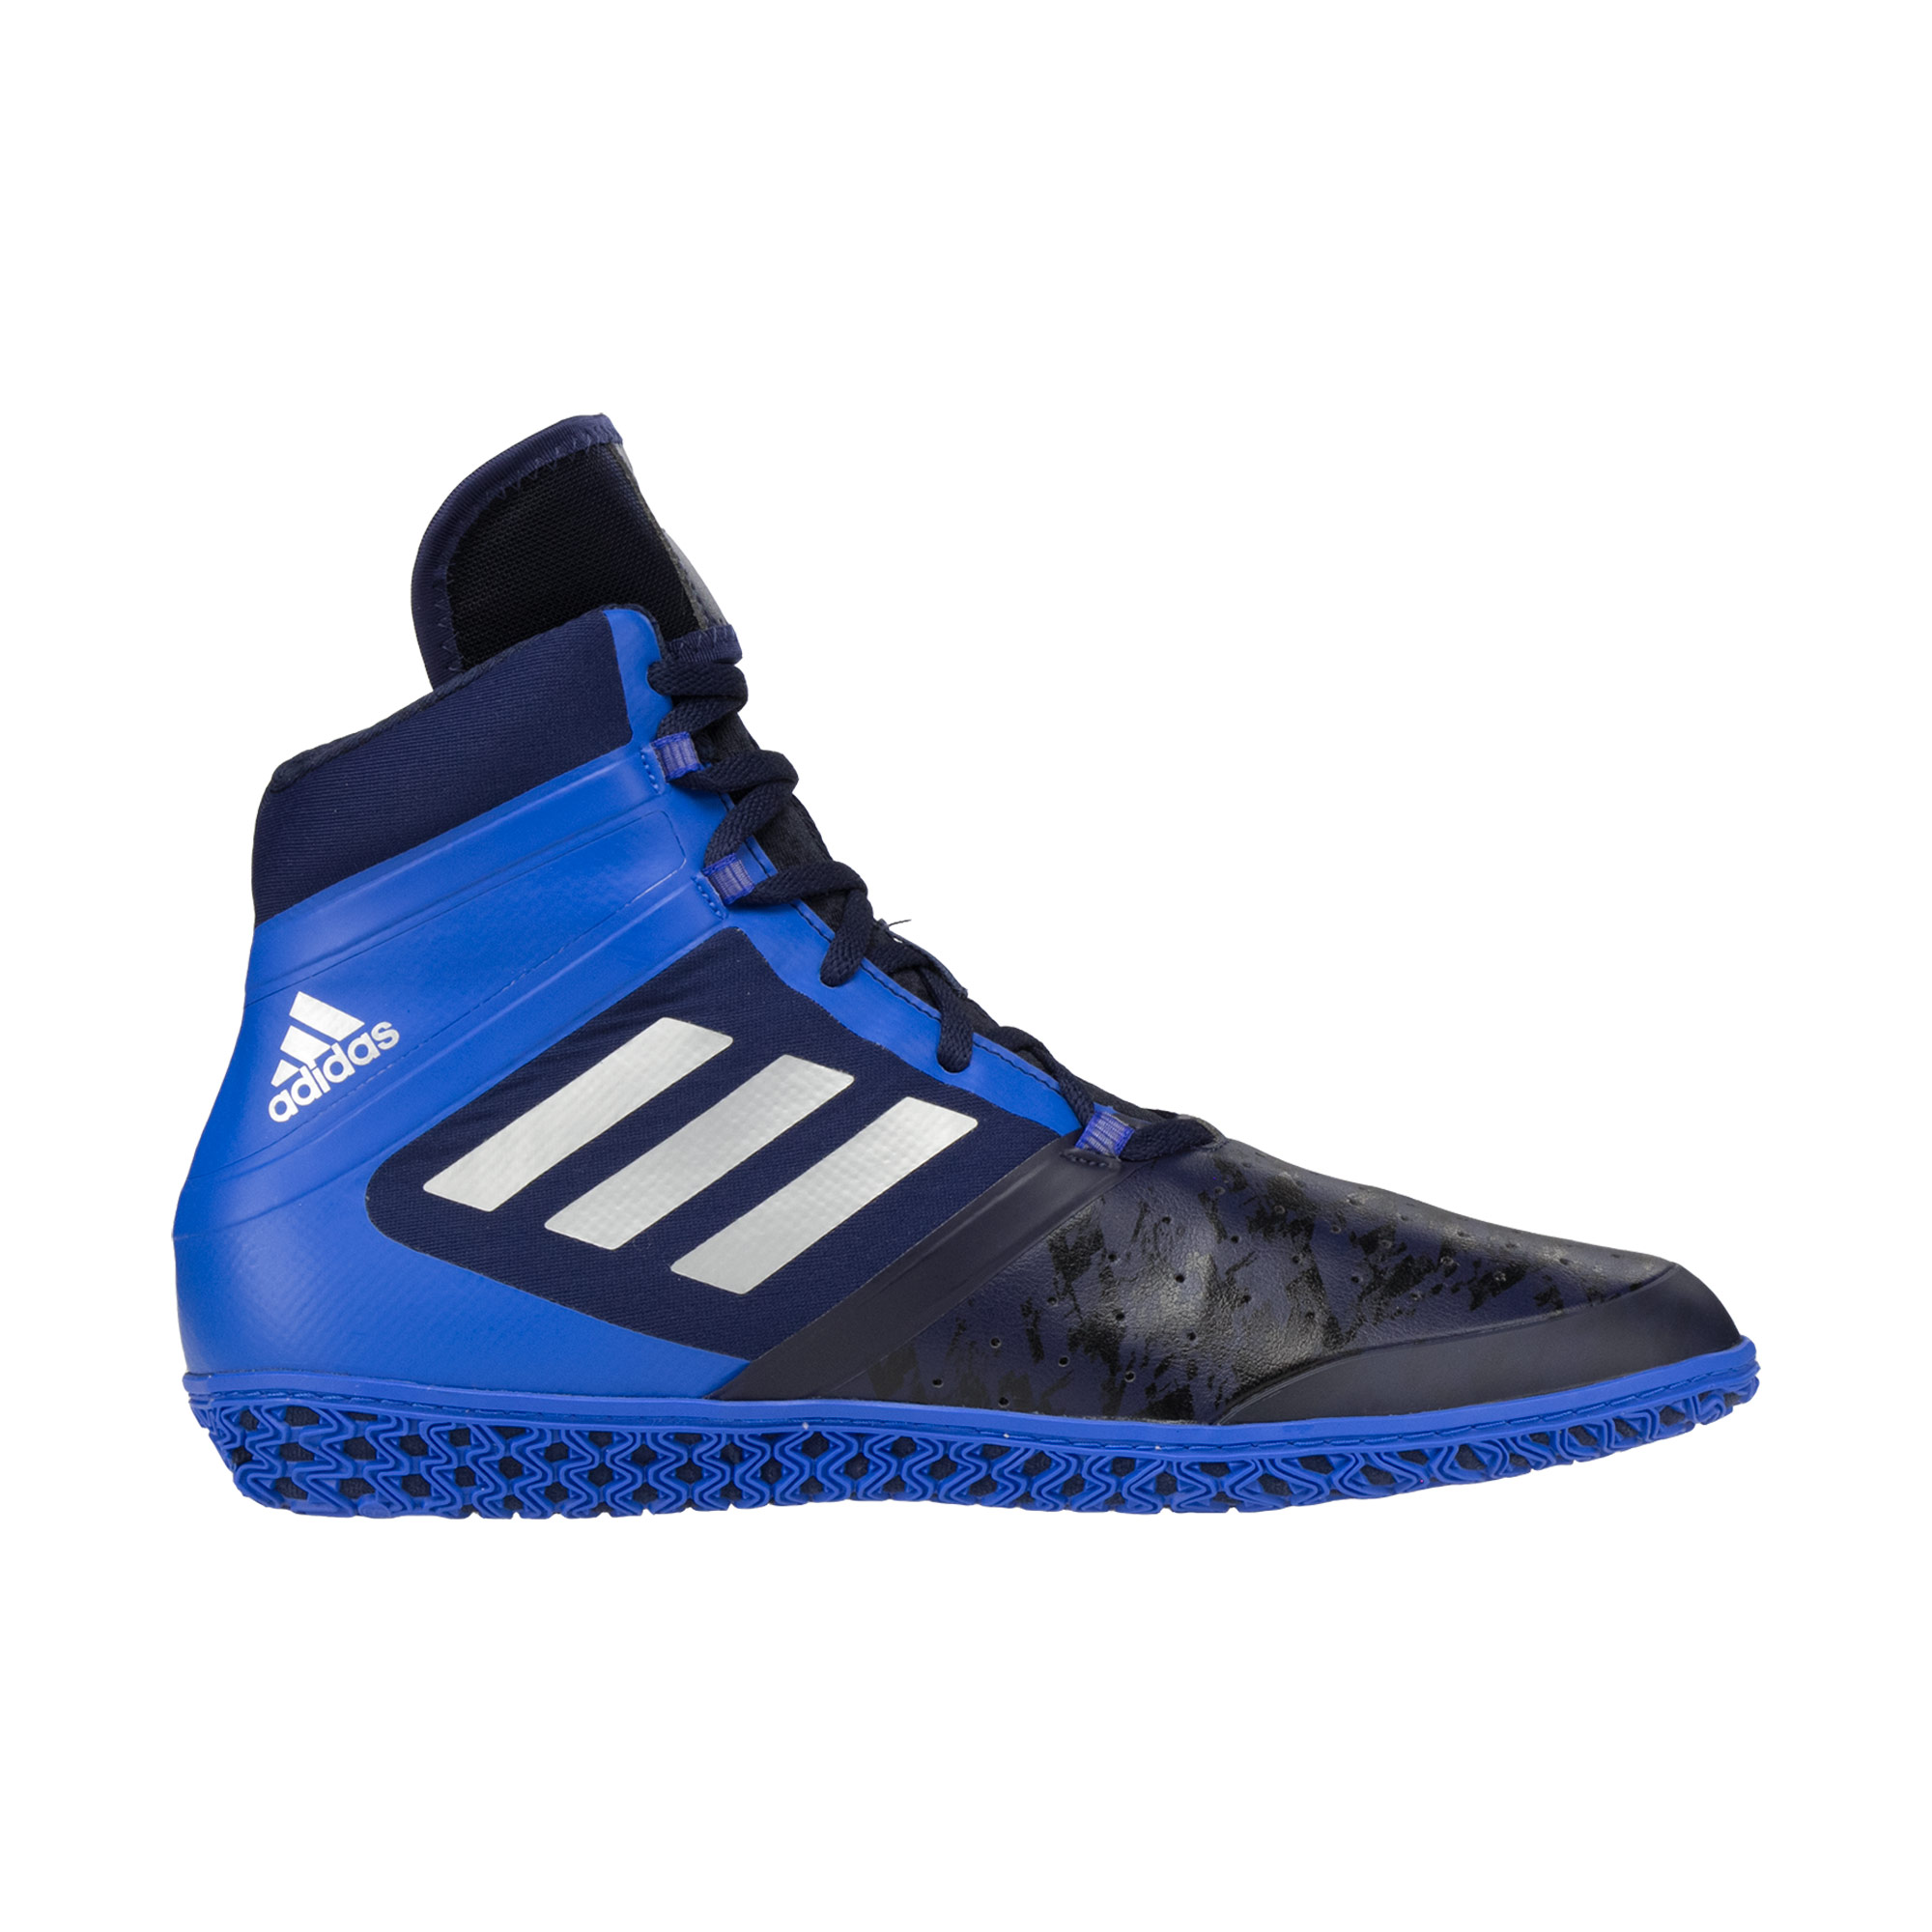 Adidas Impact Shoes | WrestlingMart | Free Shipping